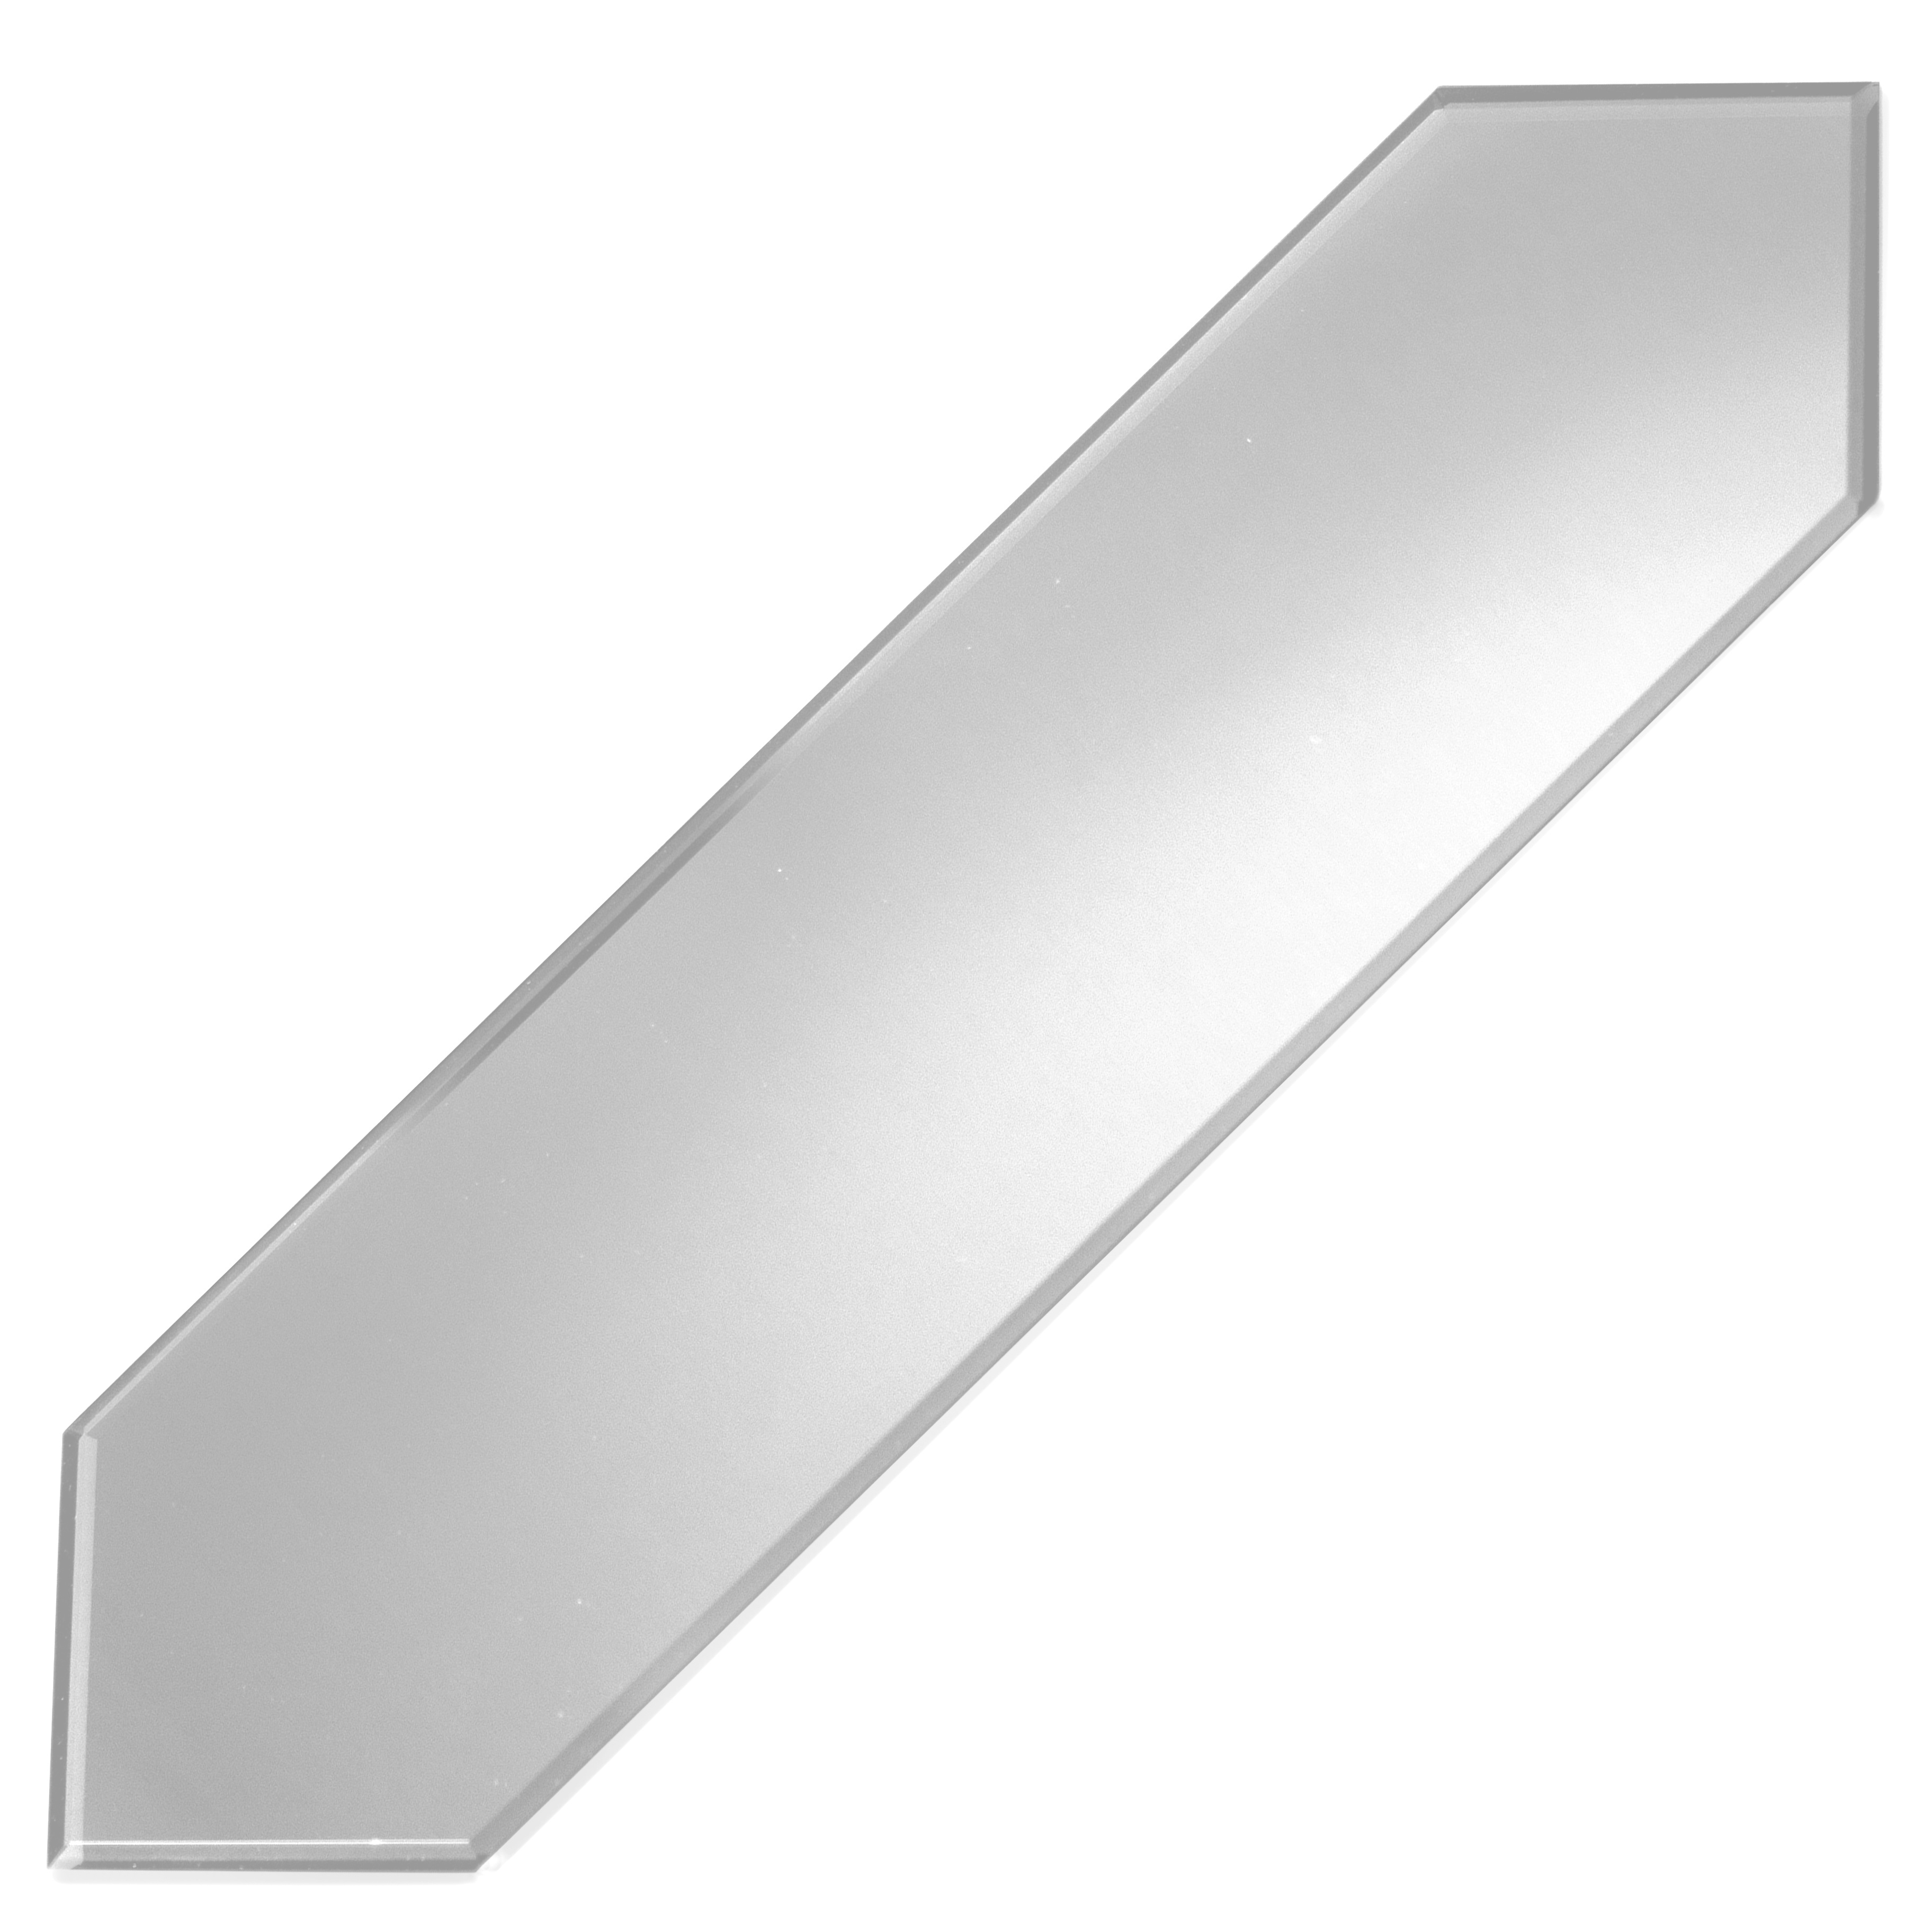 Reflections 3 in x 11.875 in Mirror Picket Tile in SILVER Matte